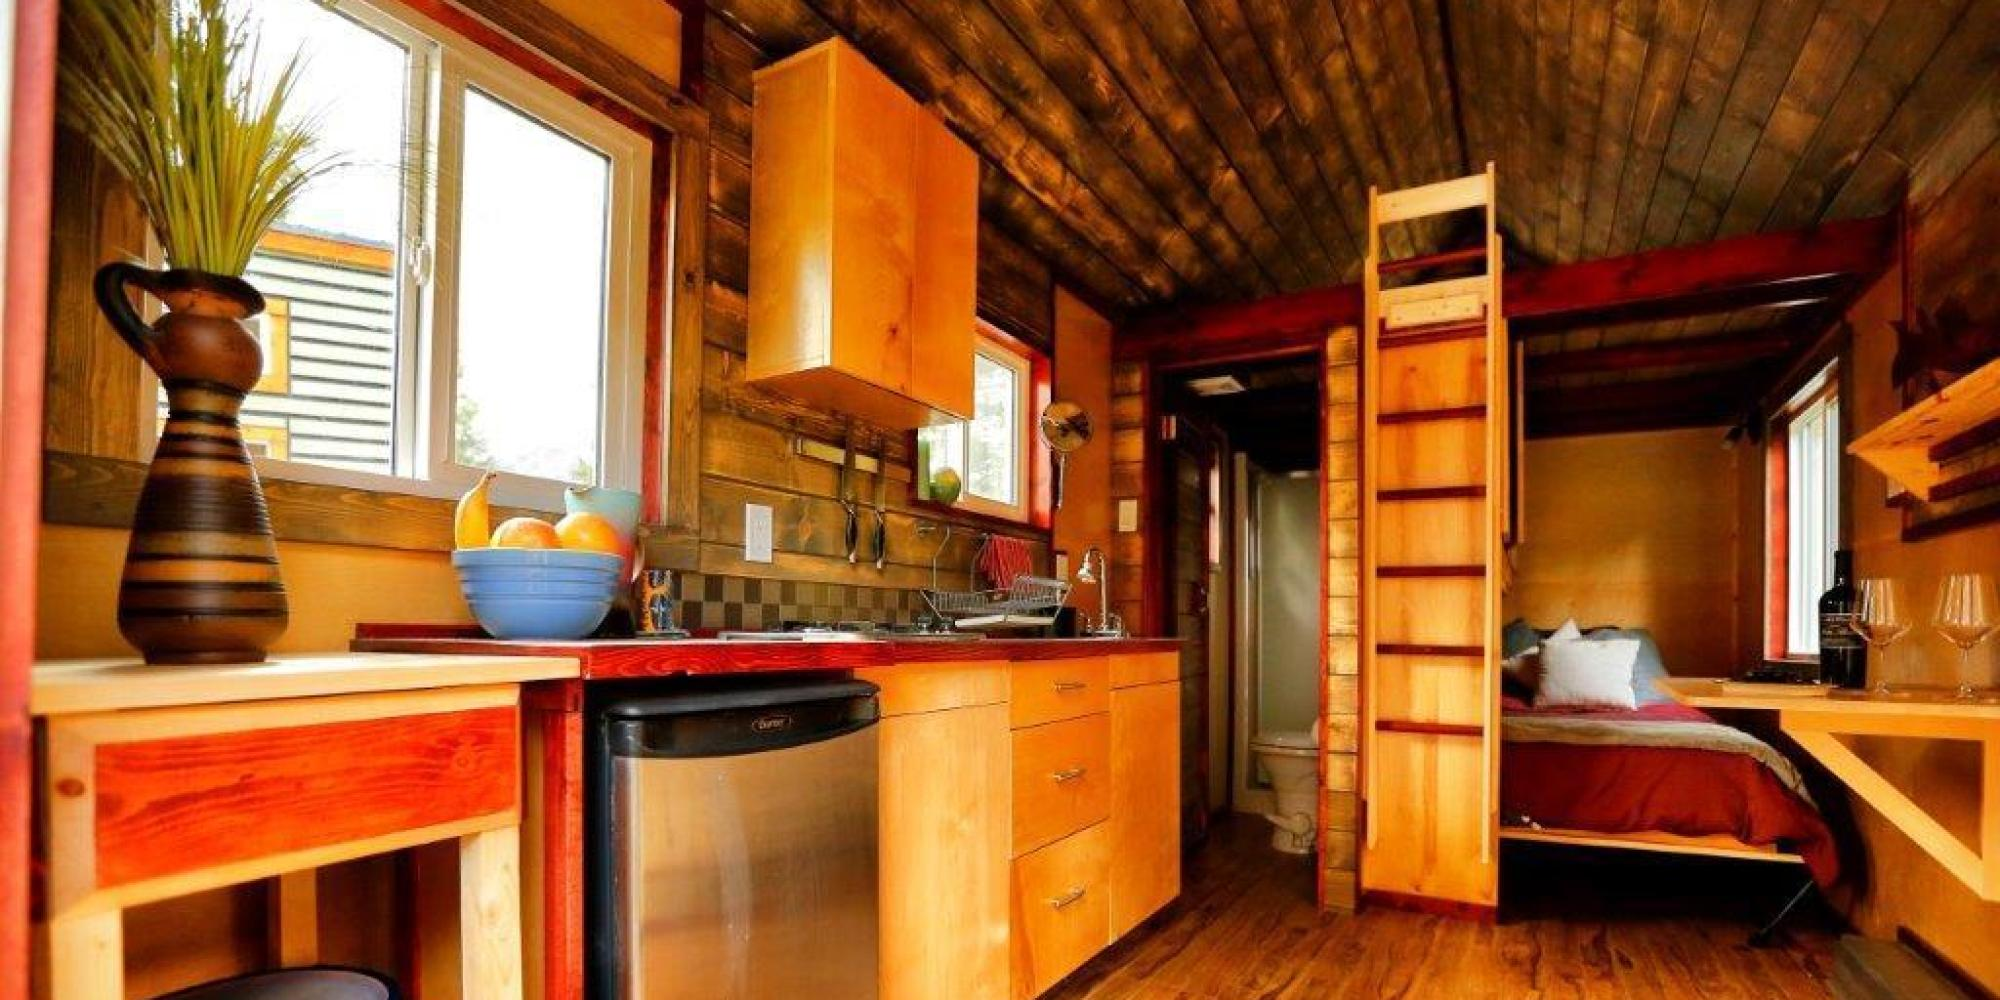 Prime Tiny Home Village In Terrace B C Hopes To Help Ease Housing Crisis Largest Home Design Picture Inspirations Pitcheantrous